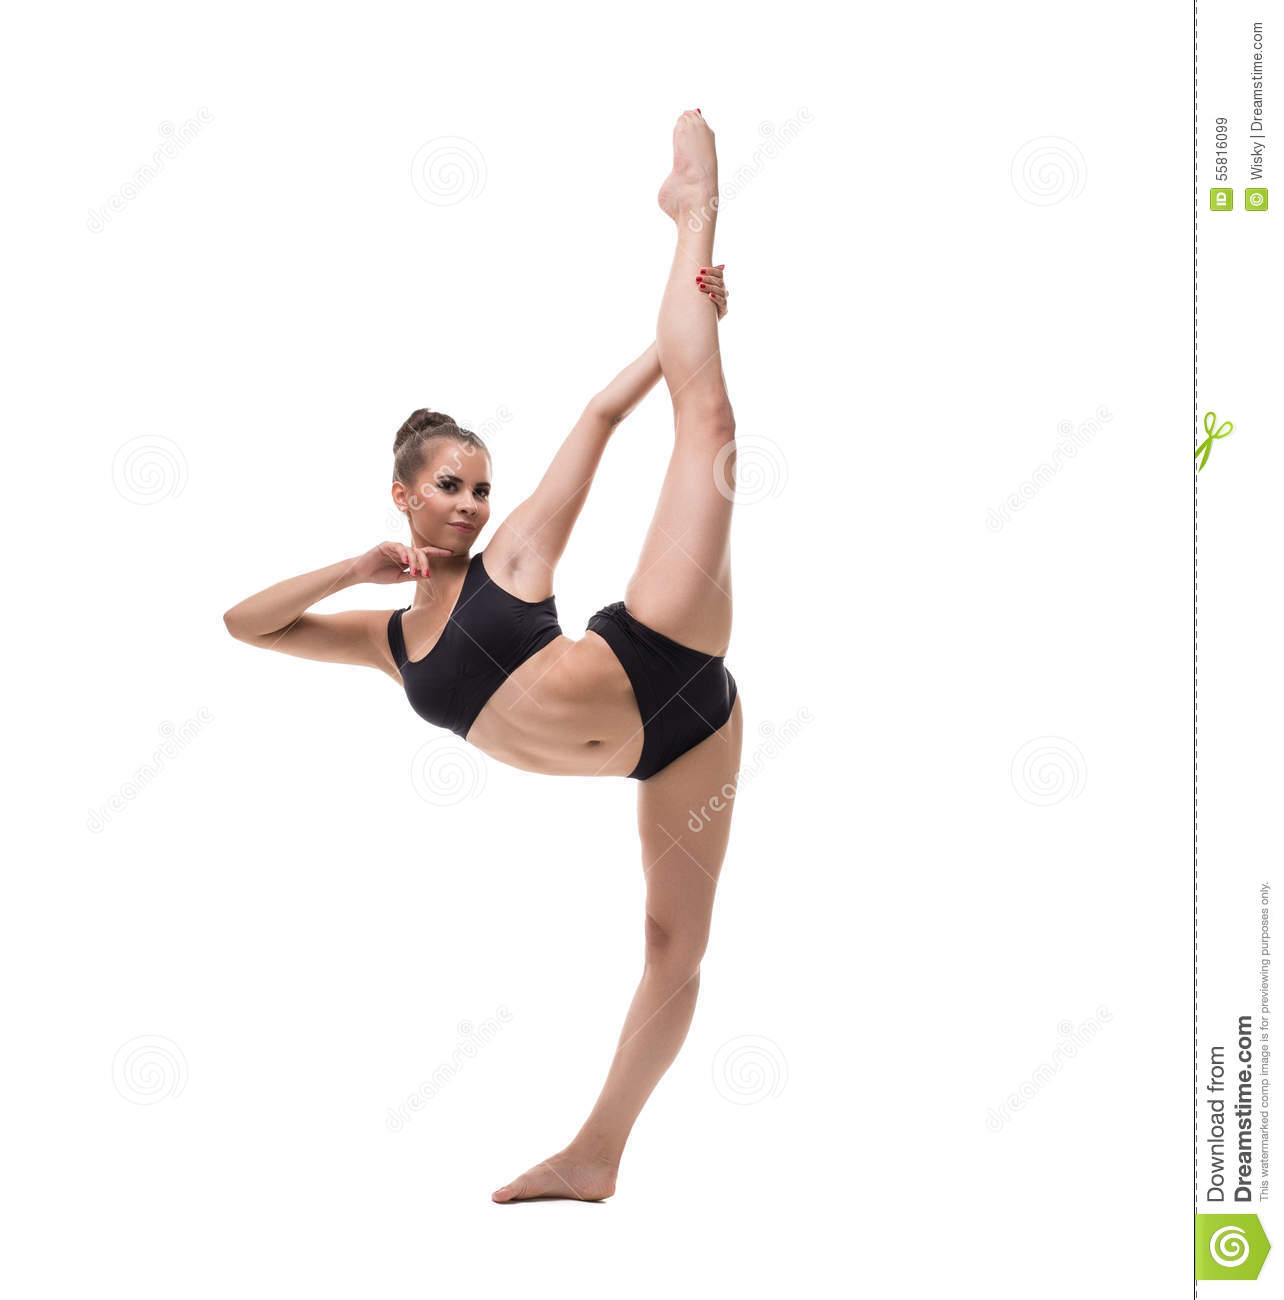 nude while doing splits